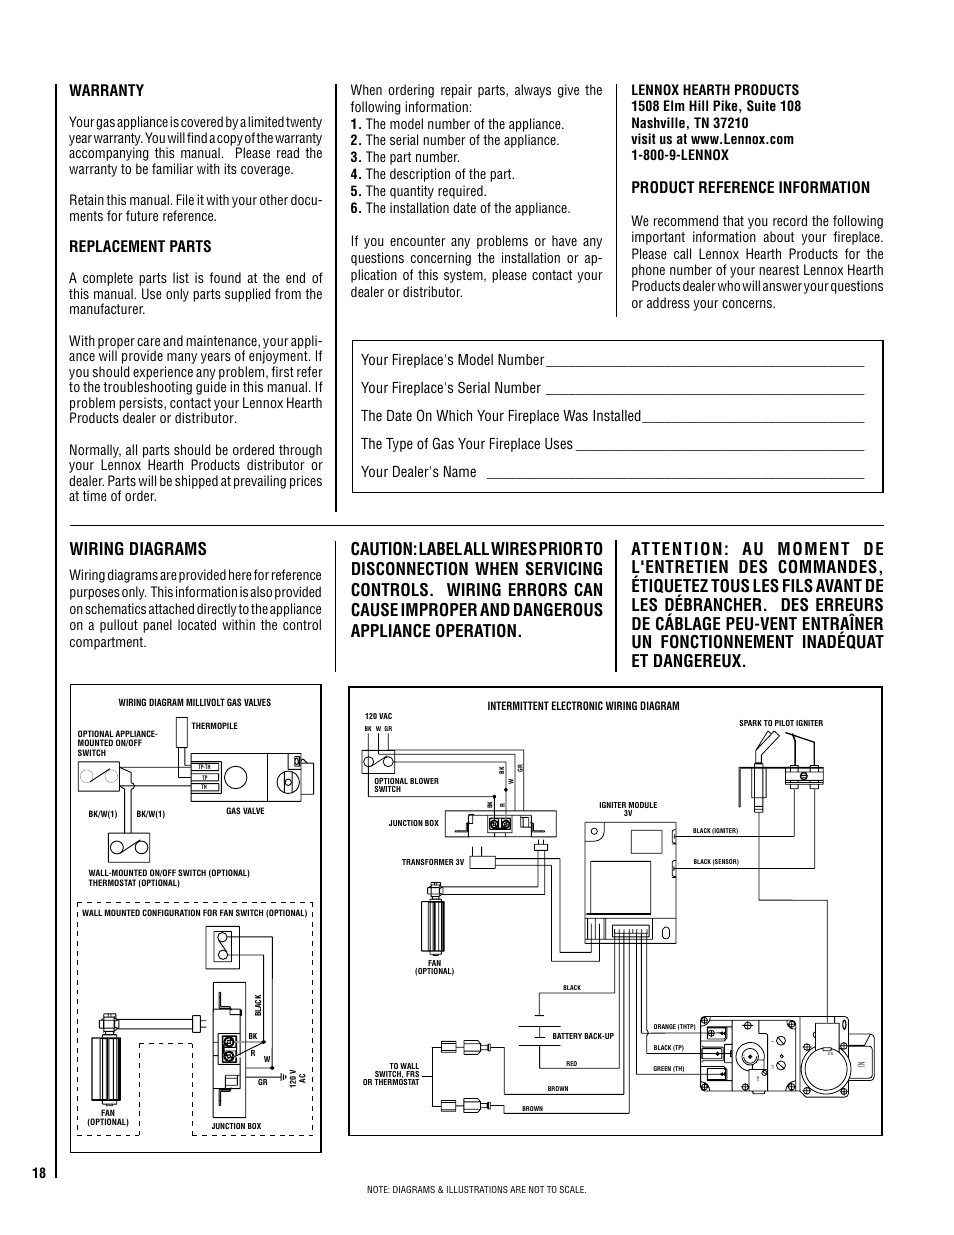 Lennox Elite Series Wiring Diagram Not Lossing Air Handler Diagrams Warranty Replacement Parts Hearth Rh Manualsdir Com Furnace